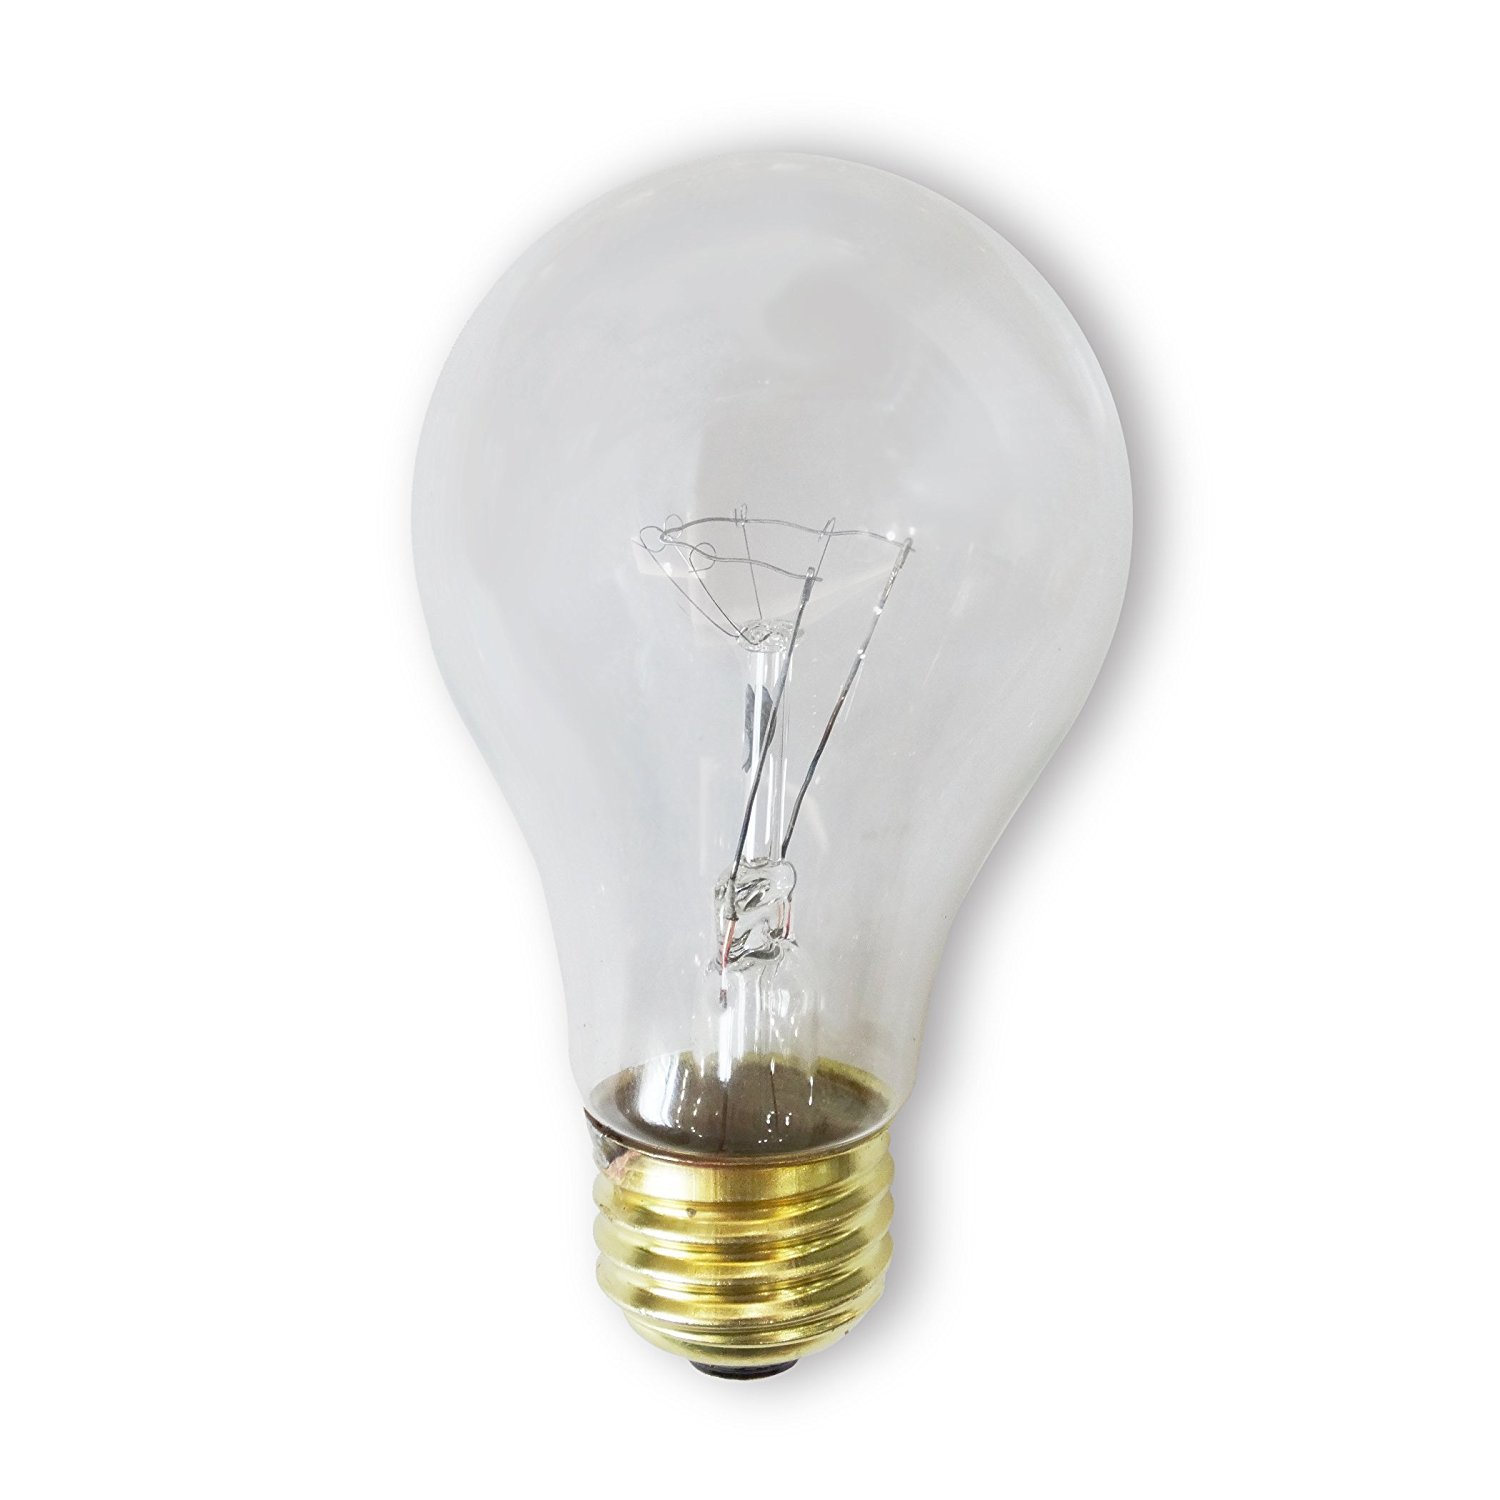 Bulbrite 60ACLRS-2PK 60 Watt Incandescent A19 Rough Service Bulb Clear 2 Pack